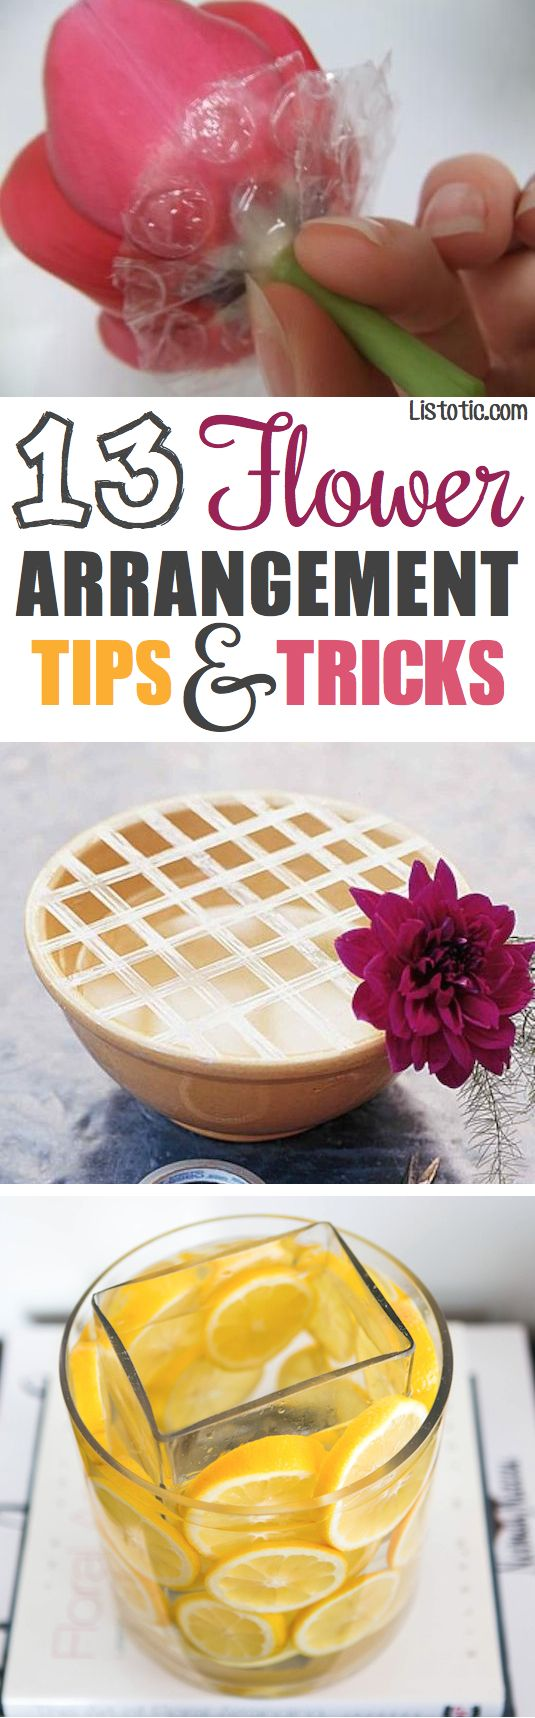 13 tips on how to arrange flowers like a pro flower store and flowers 13 tips on how to arrange flowers like a pro make grocery store bouquets look stunning izmirmasajfo Choice Image